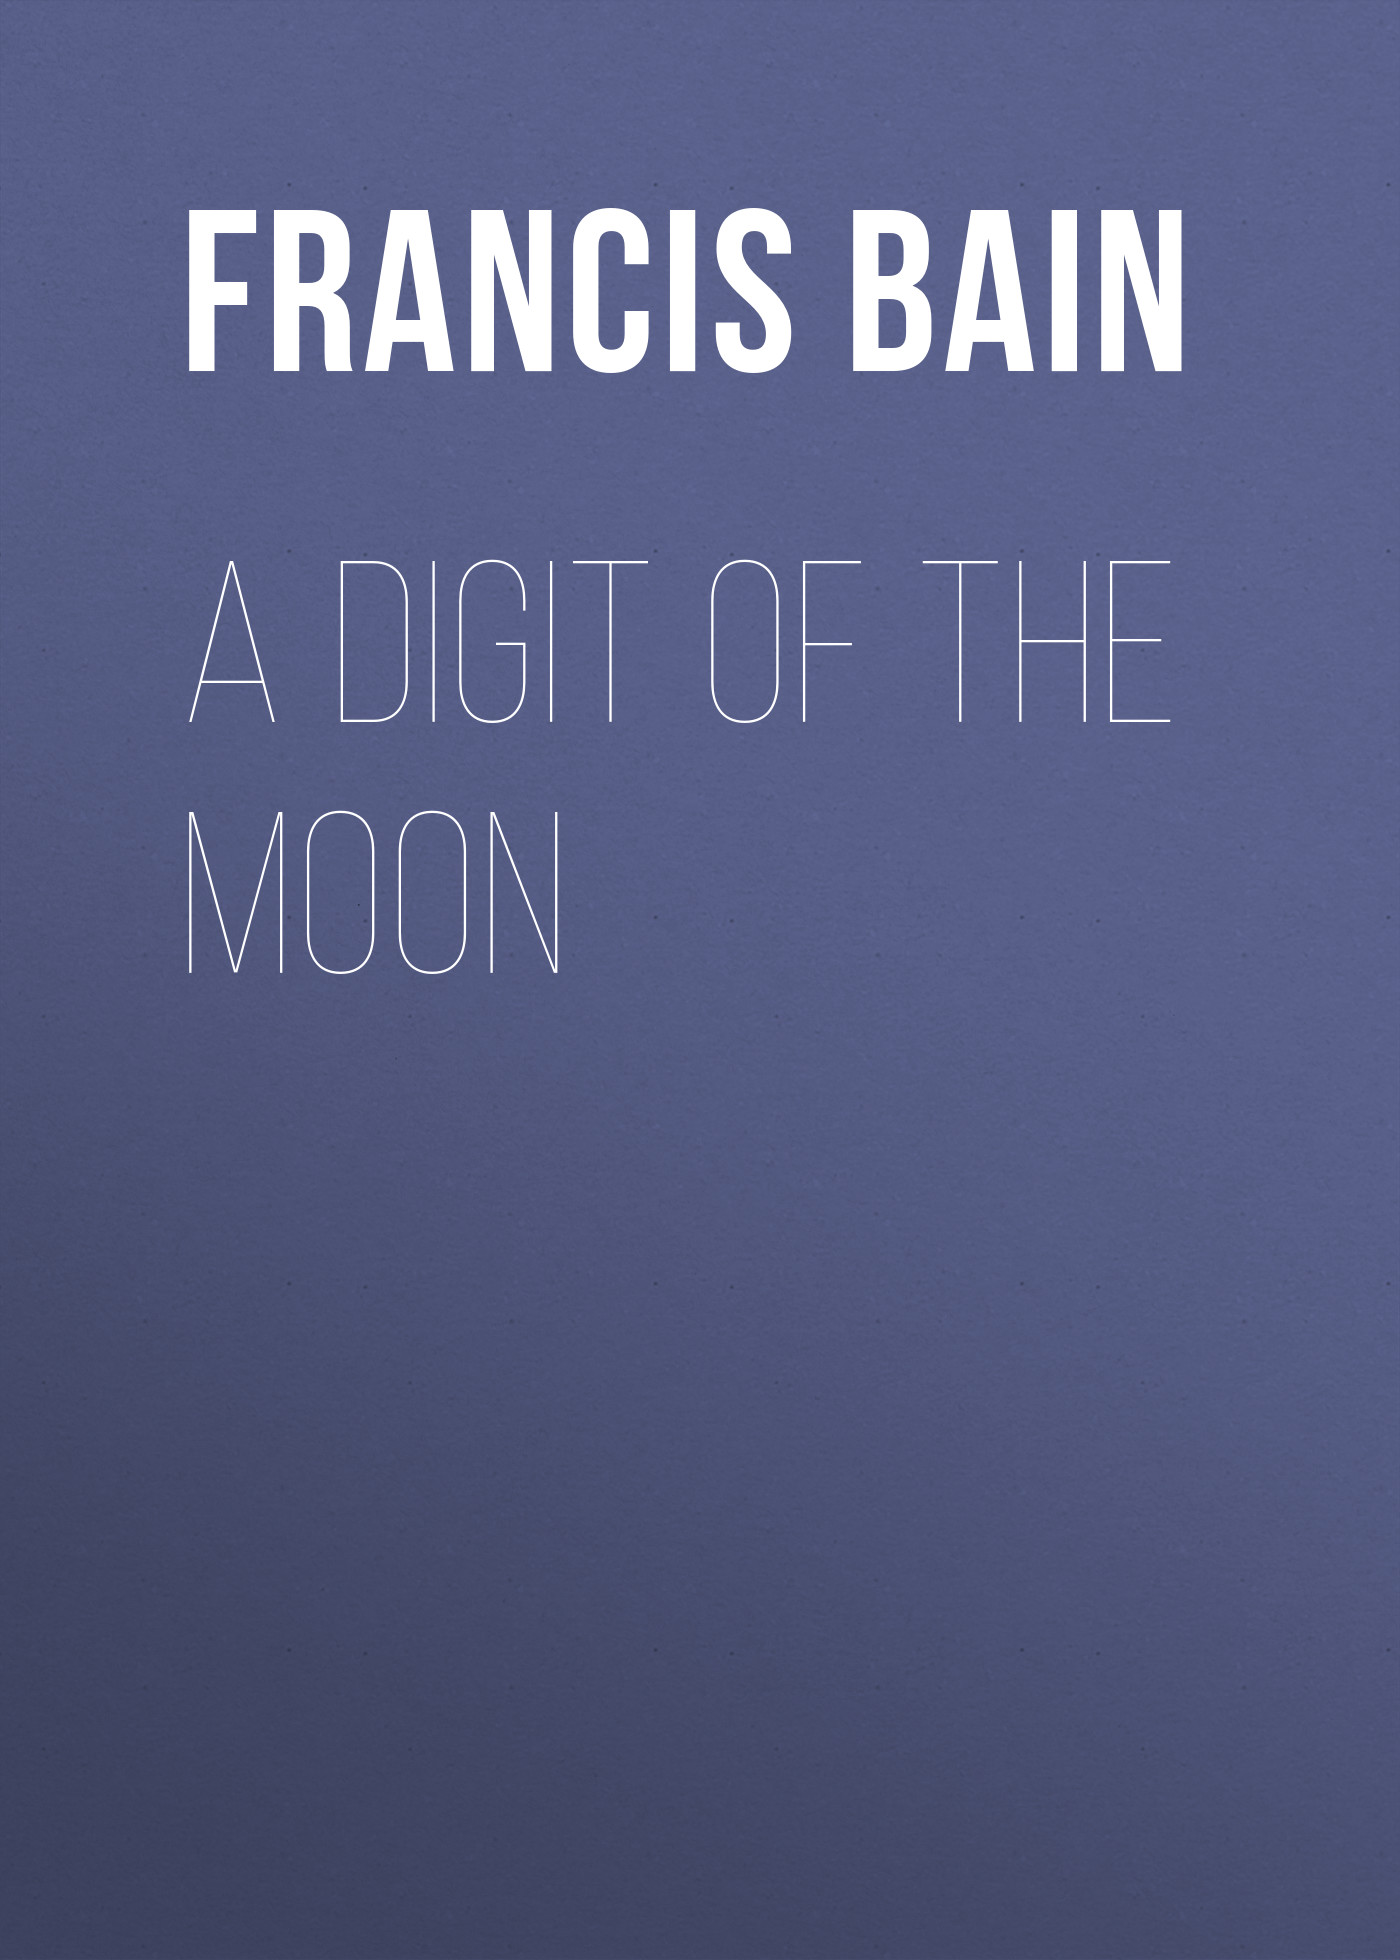 Bain Francis William A Digit of the Moon adams francis william lauderdale songs of the army of the night